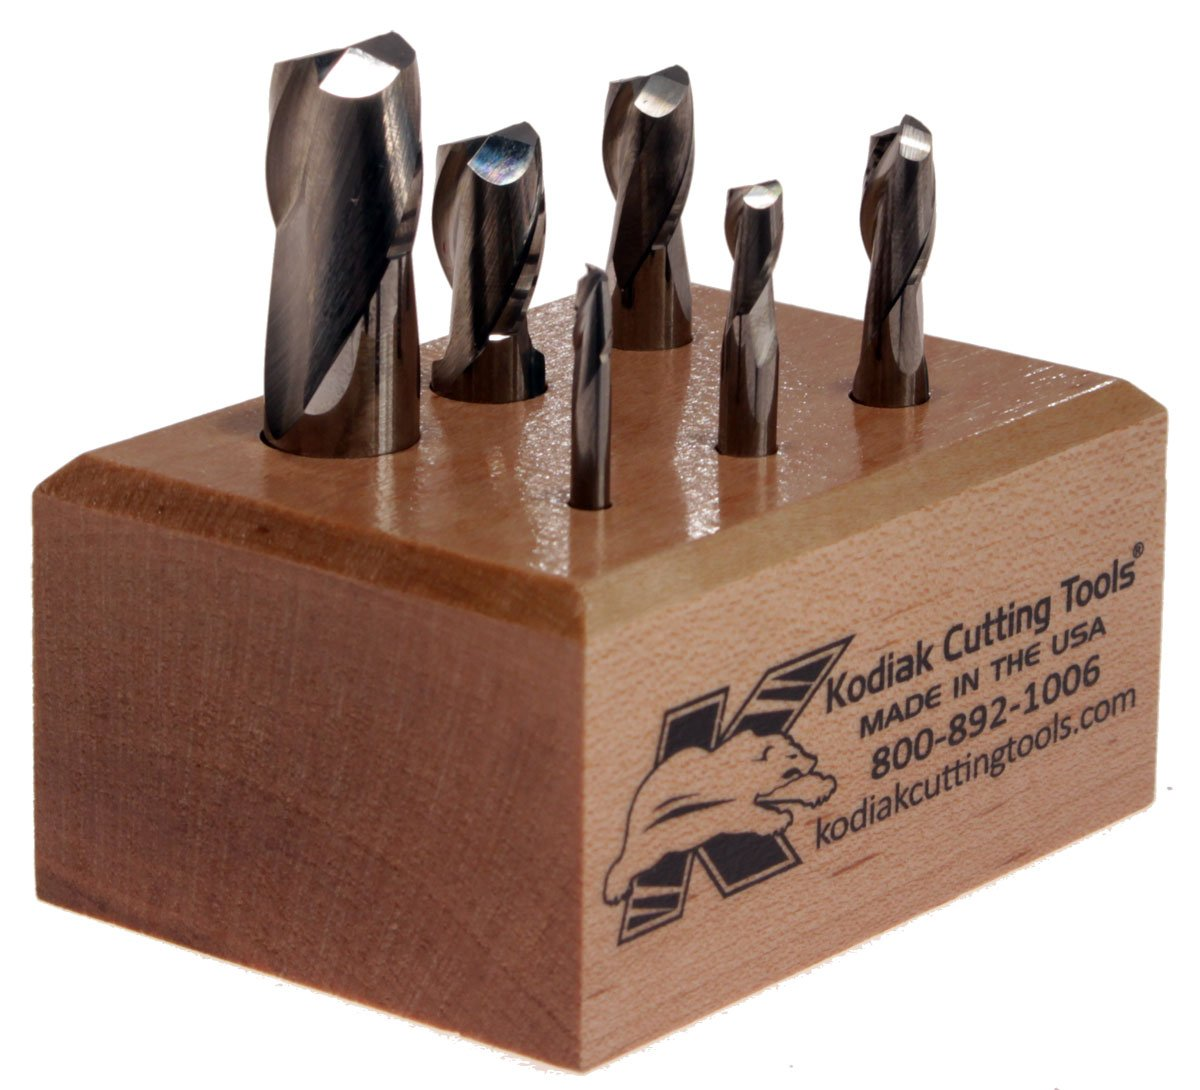 Kodiak Cutting Tools QI-8IZT-0CIW USA Made Premium Micrograin Carbide End Mill Set, 2 Flute, 1/8''-1/2'' (Pack of 6)